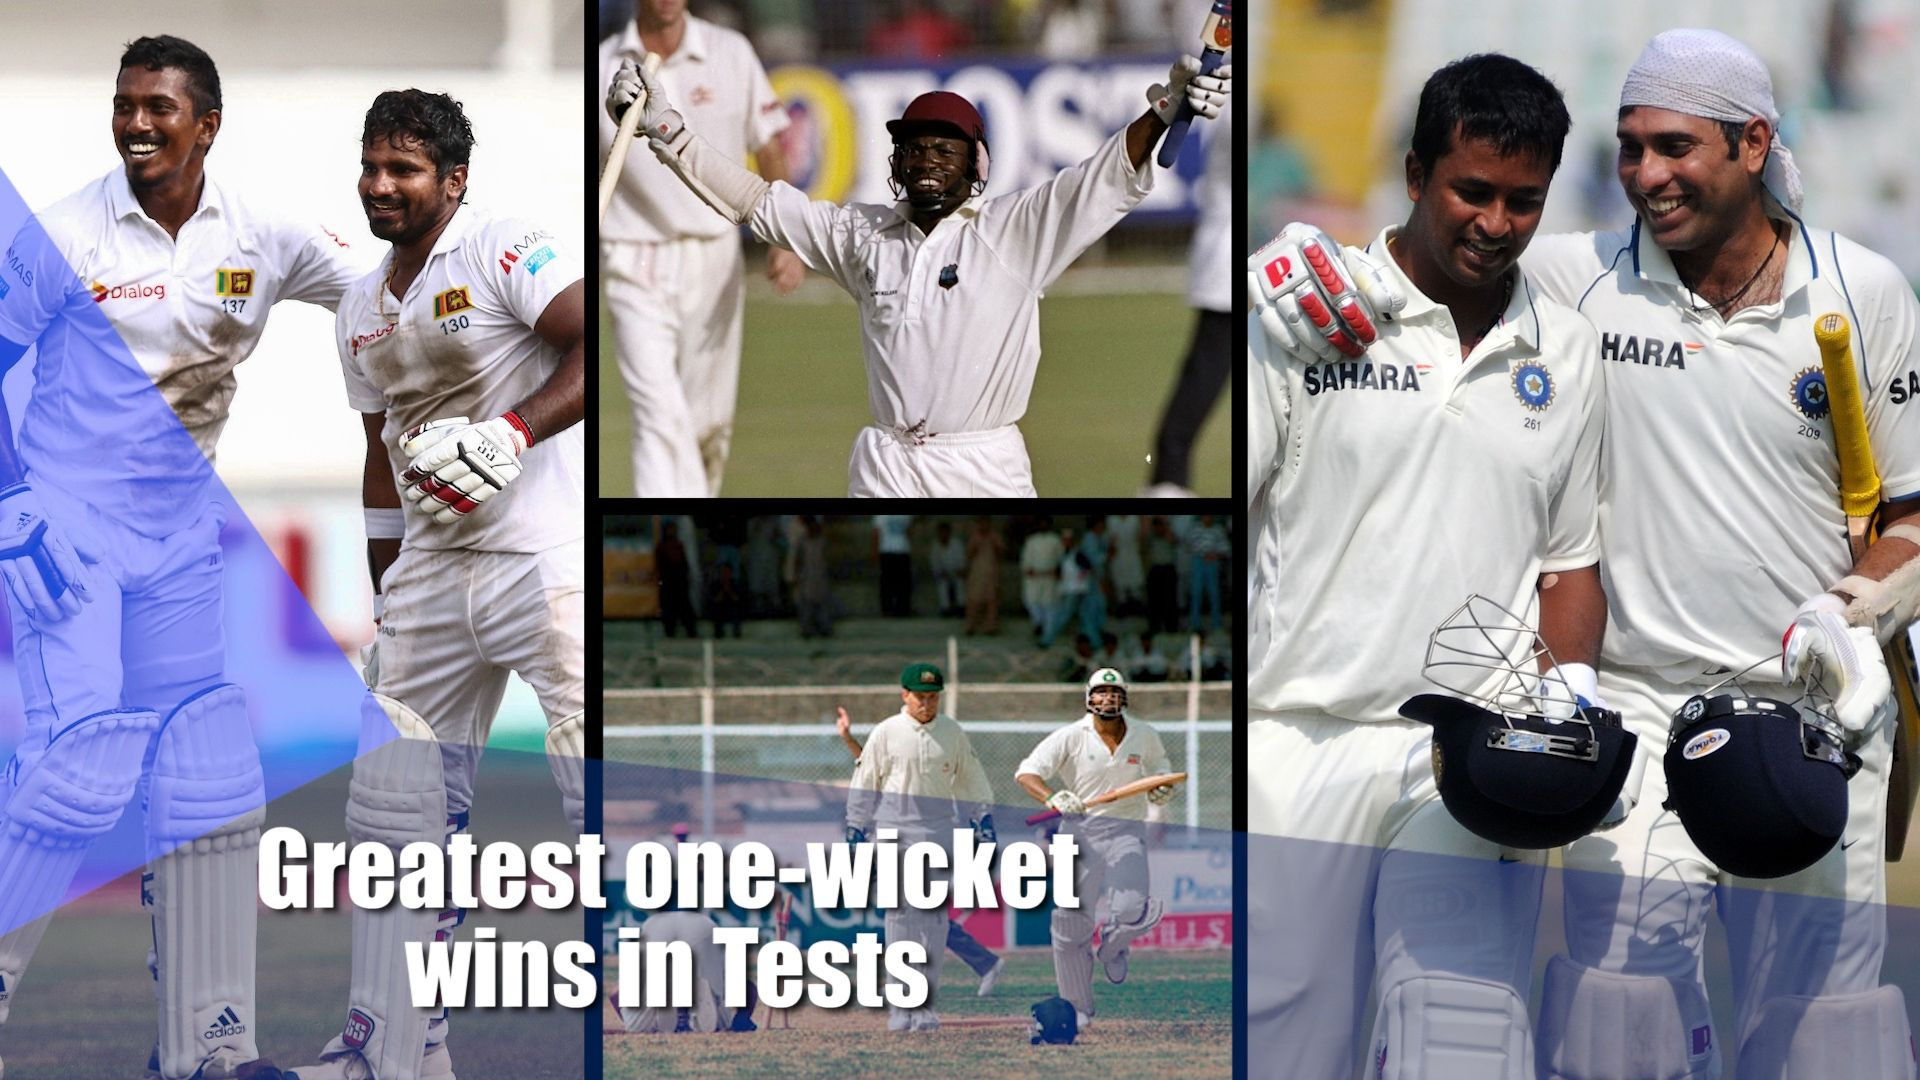 Greatest one-wicket wins in Tests